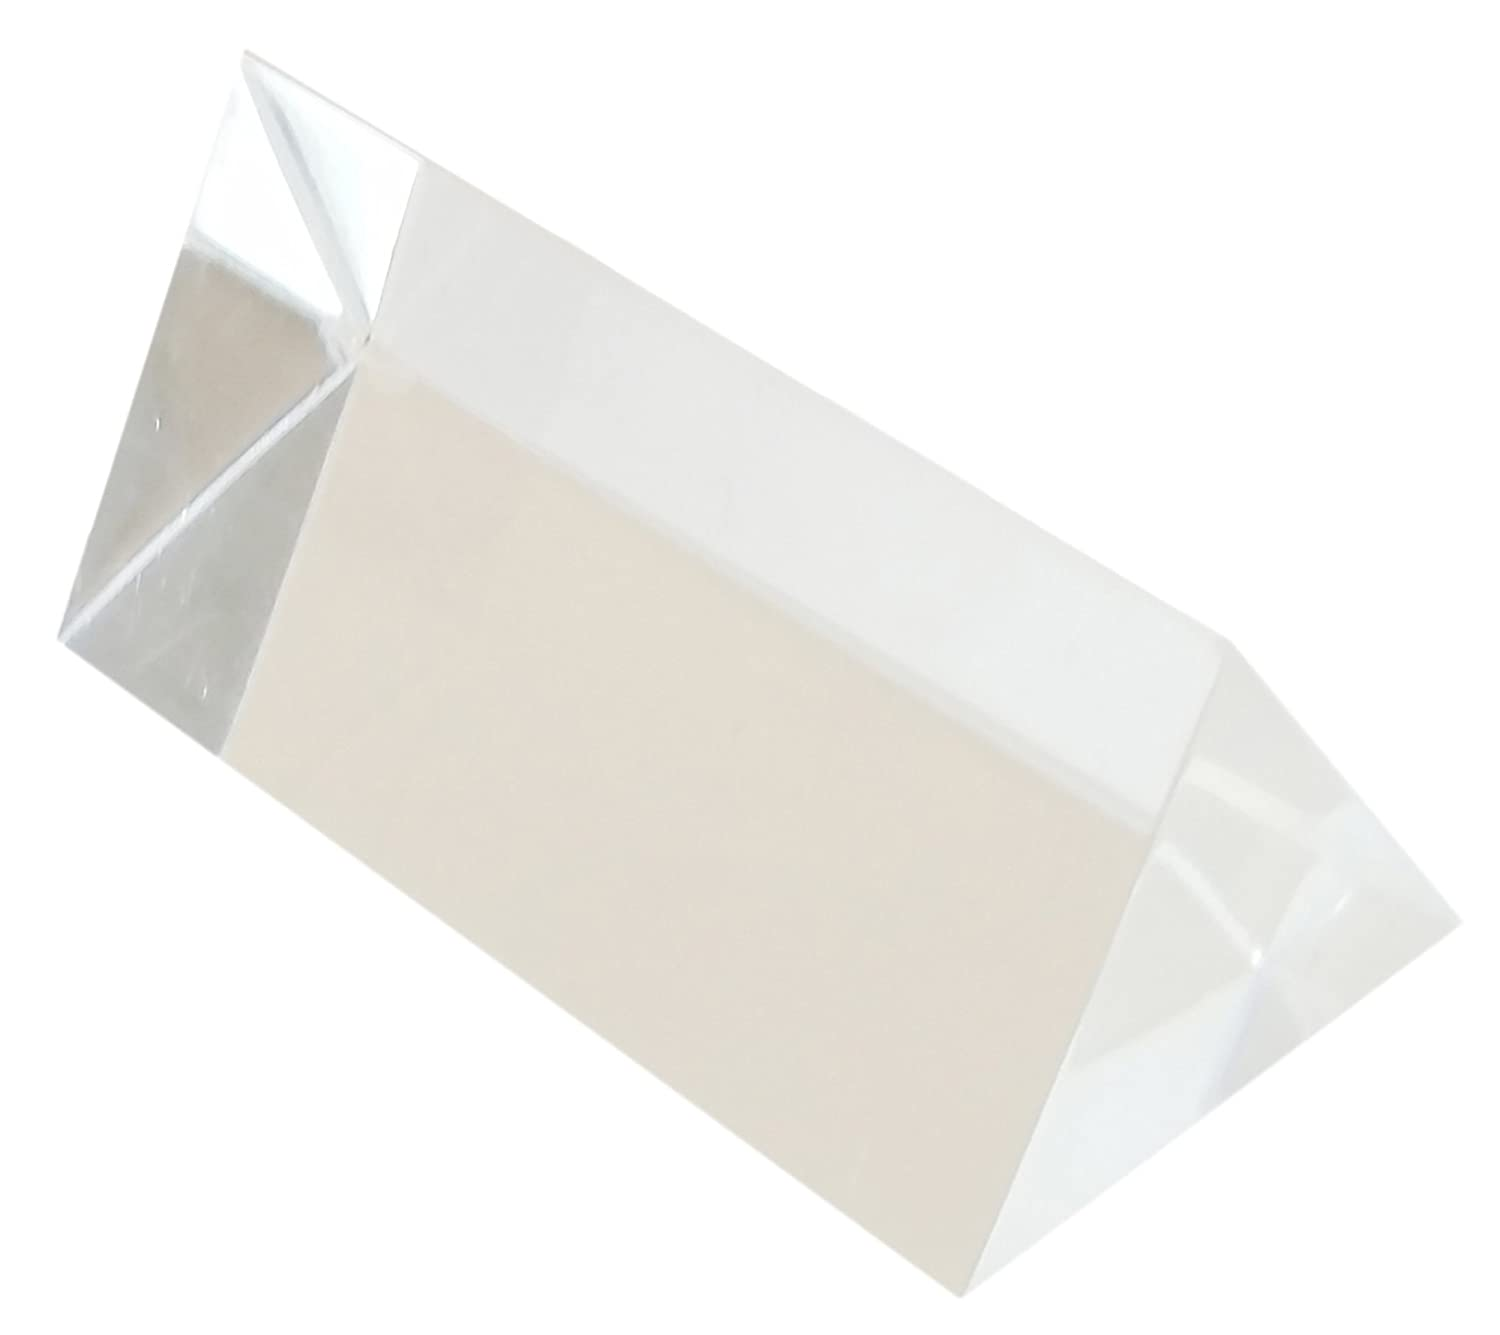 Nice GSC International 4-90974-10 Acrylic Equilateral Prism, 25mm face, 50mm Long (Pack of 10) for sale Tb6cPD6C